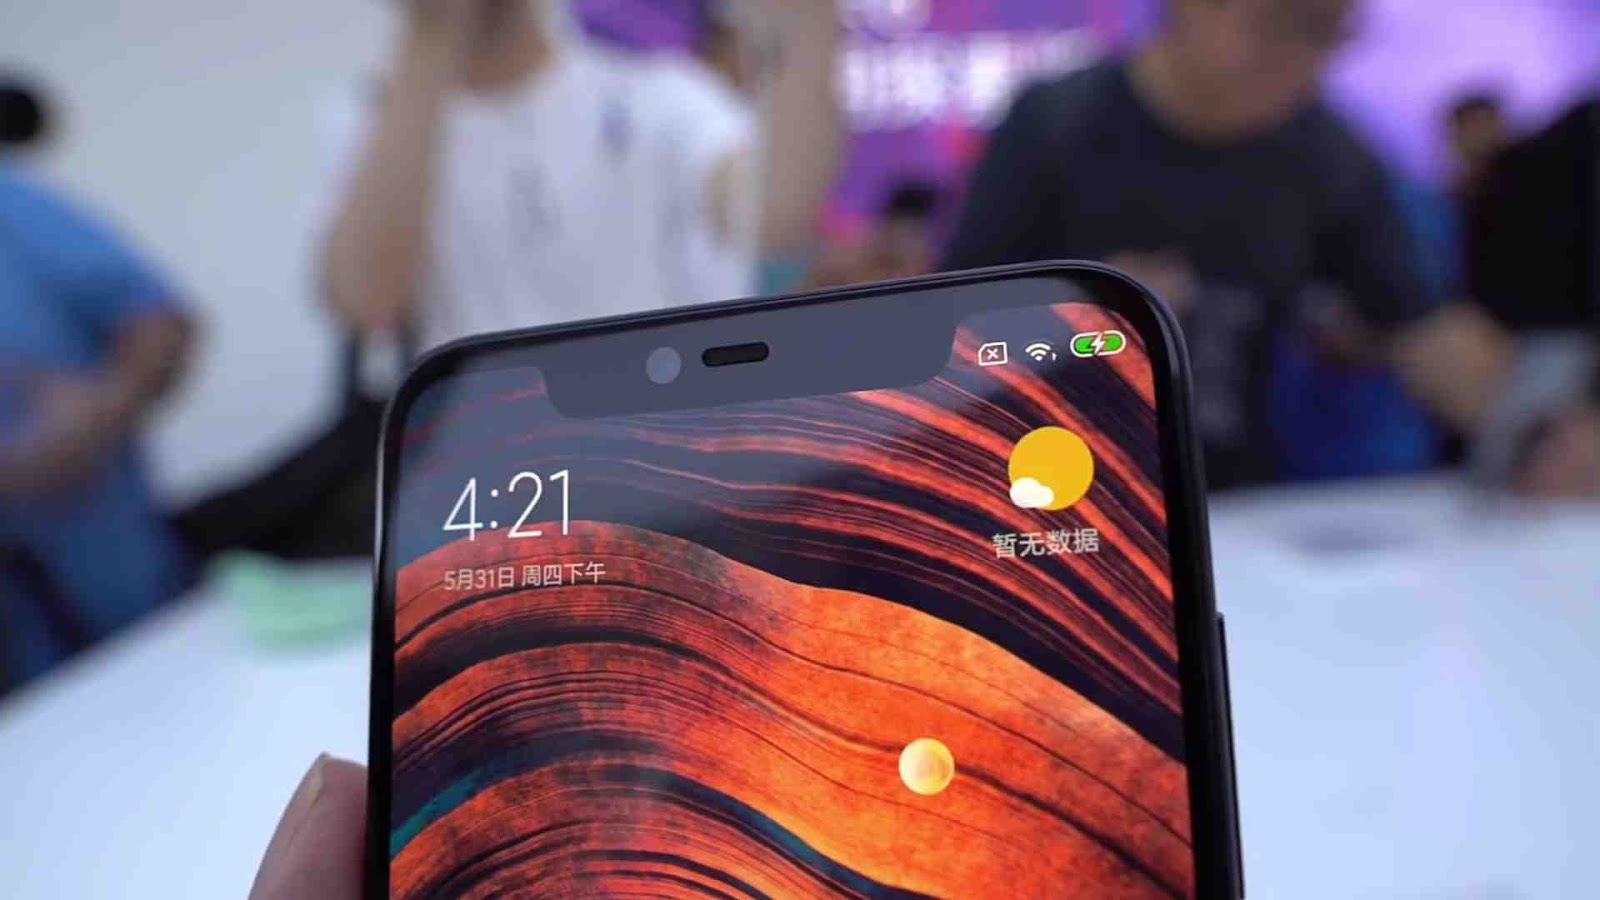 Xiaomi Mi 8 Innovative Notch